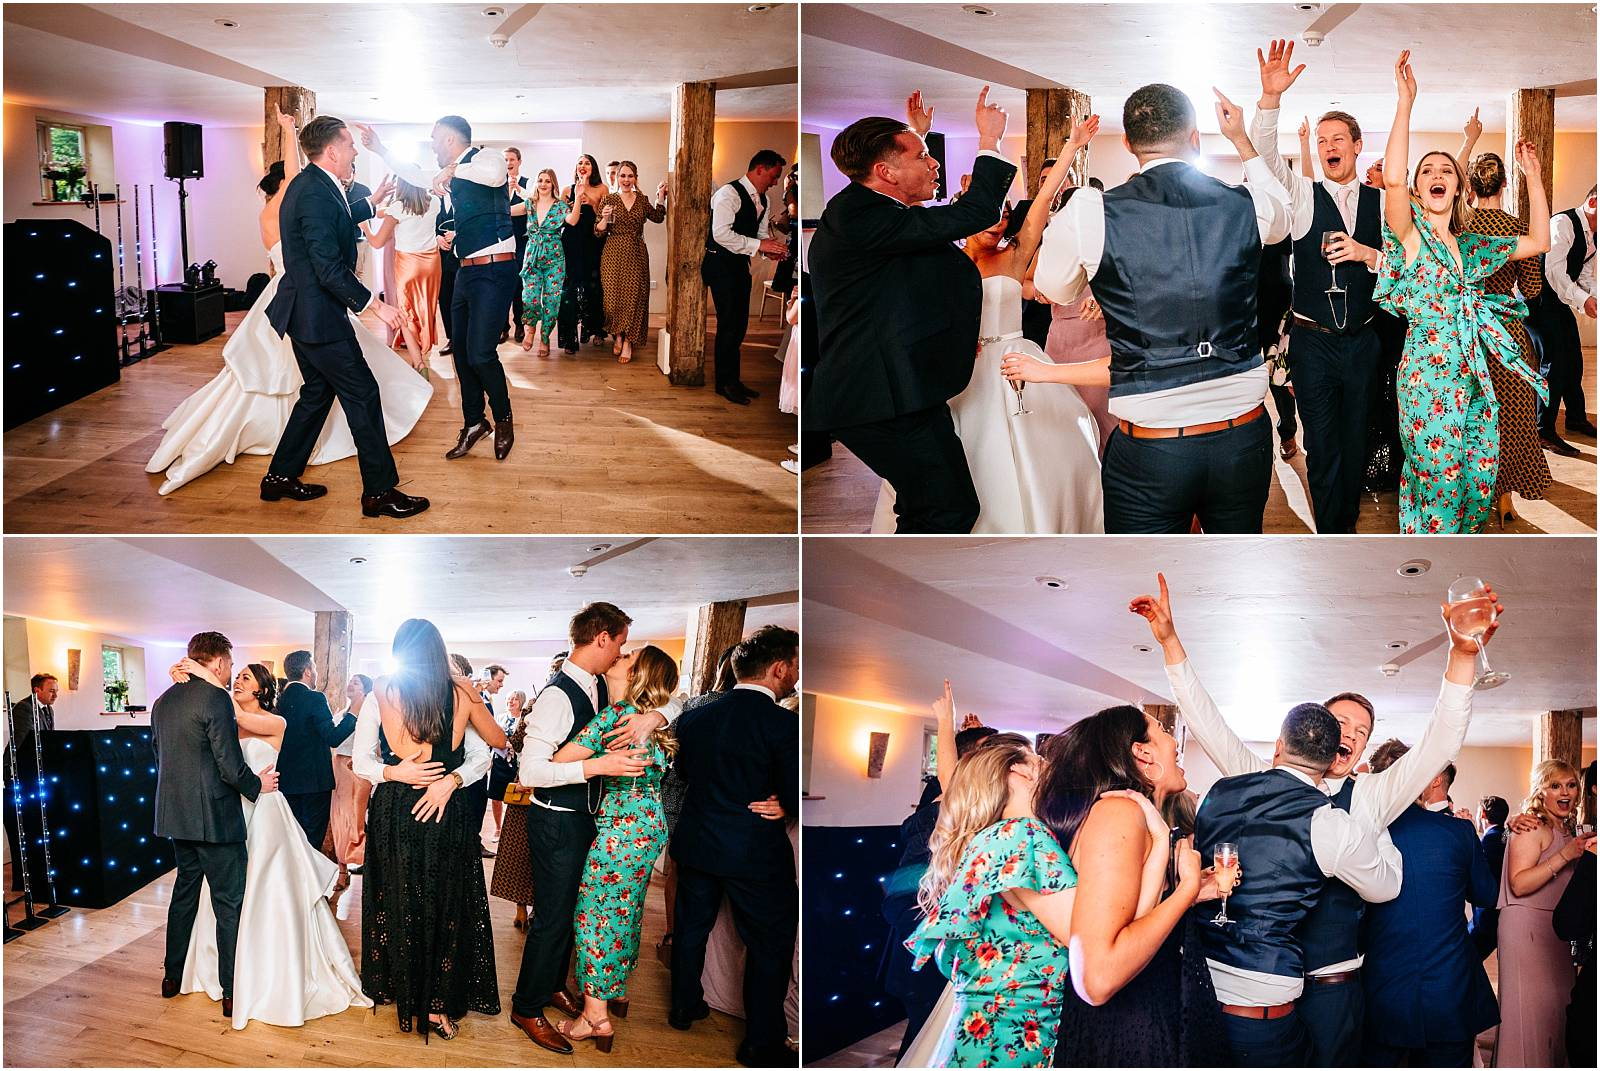 amazing wedding dancing at surrey wedding